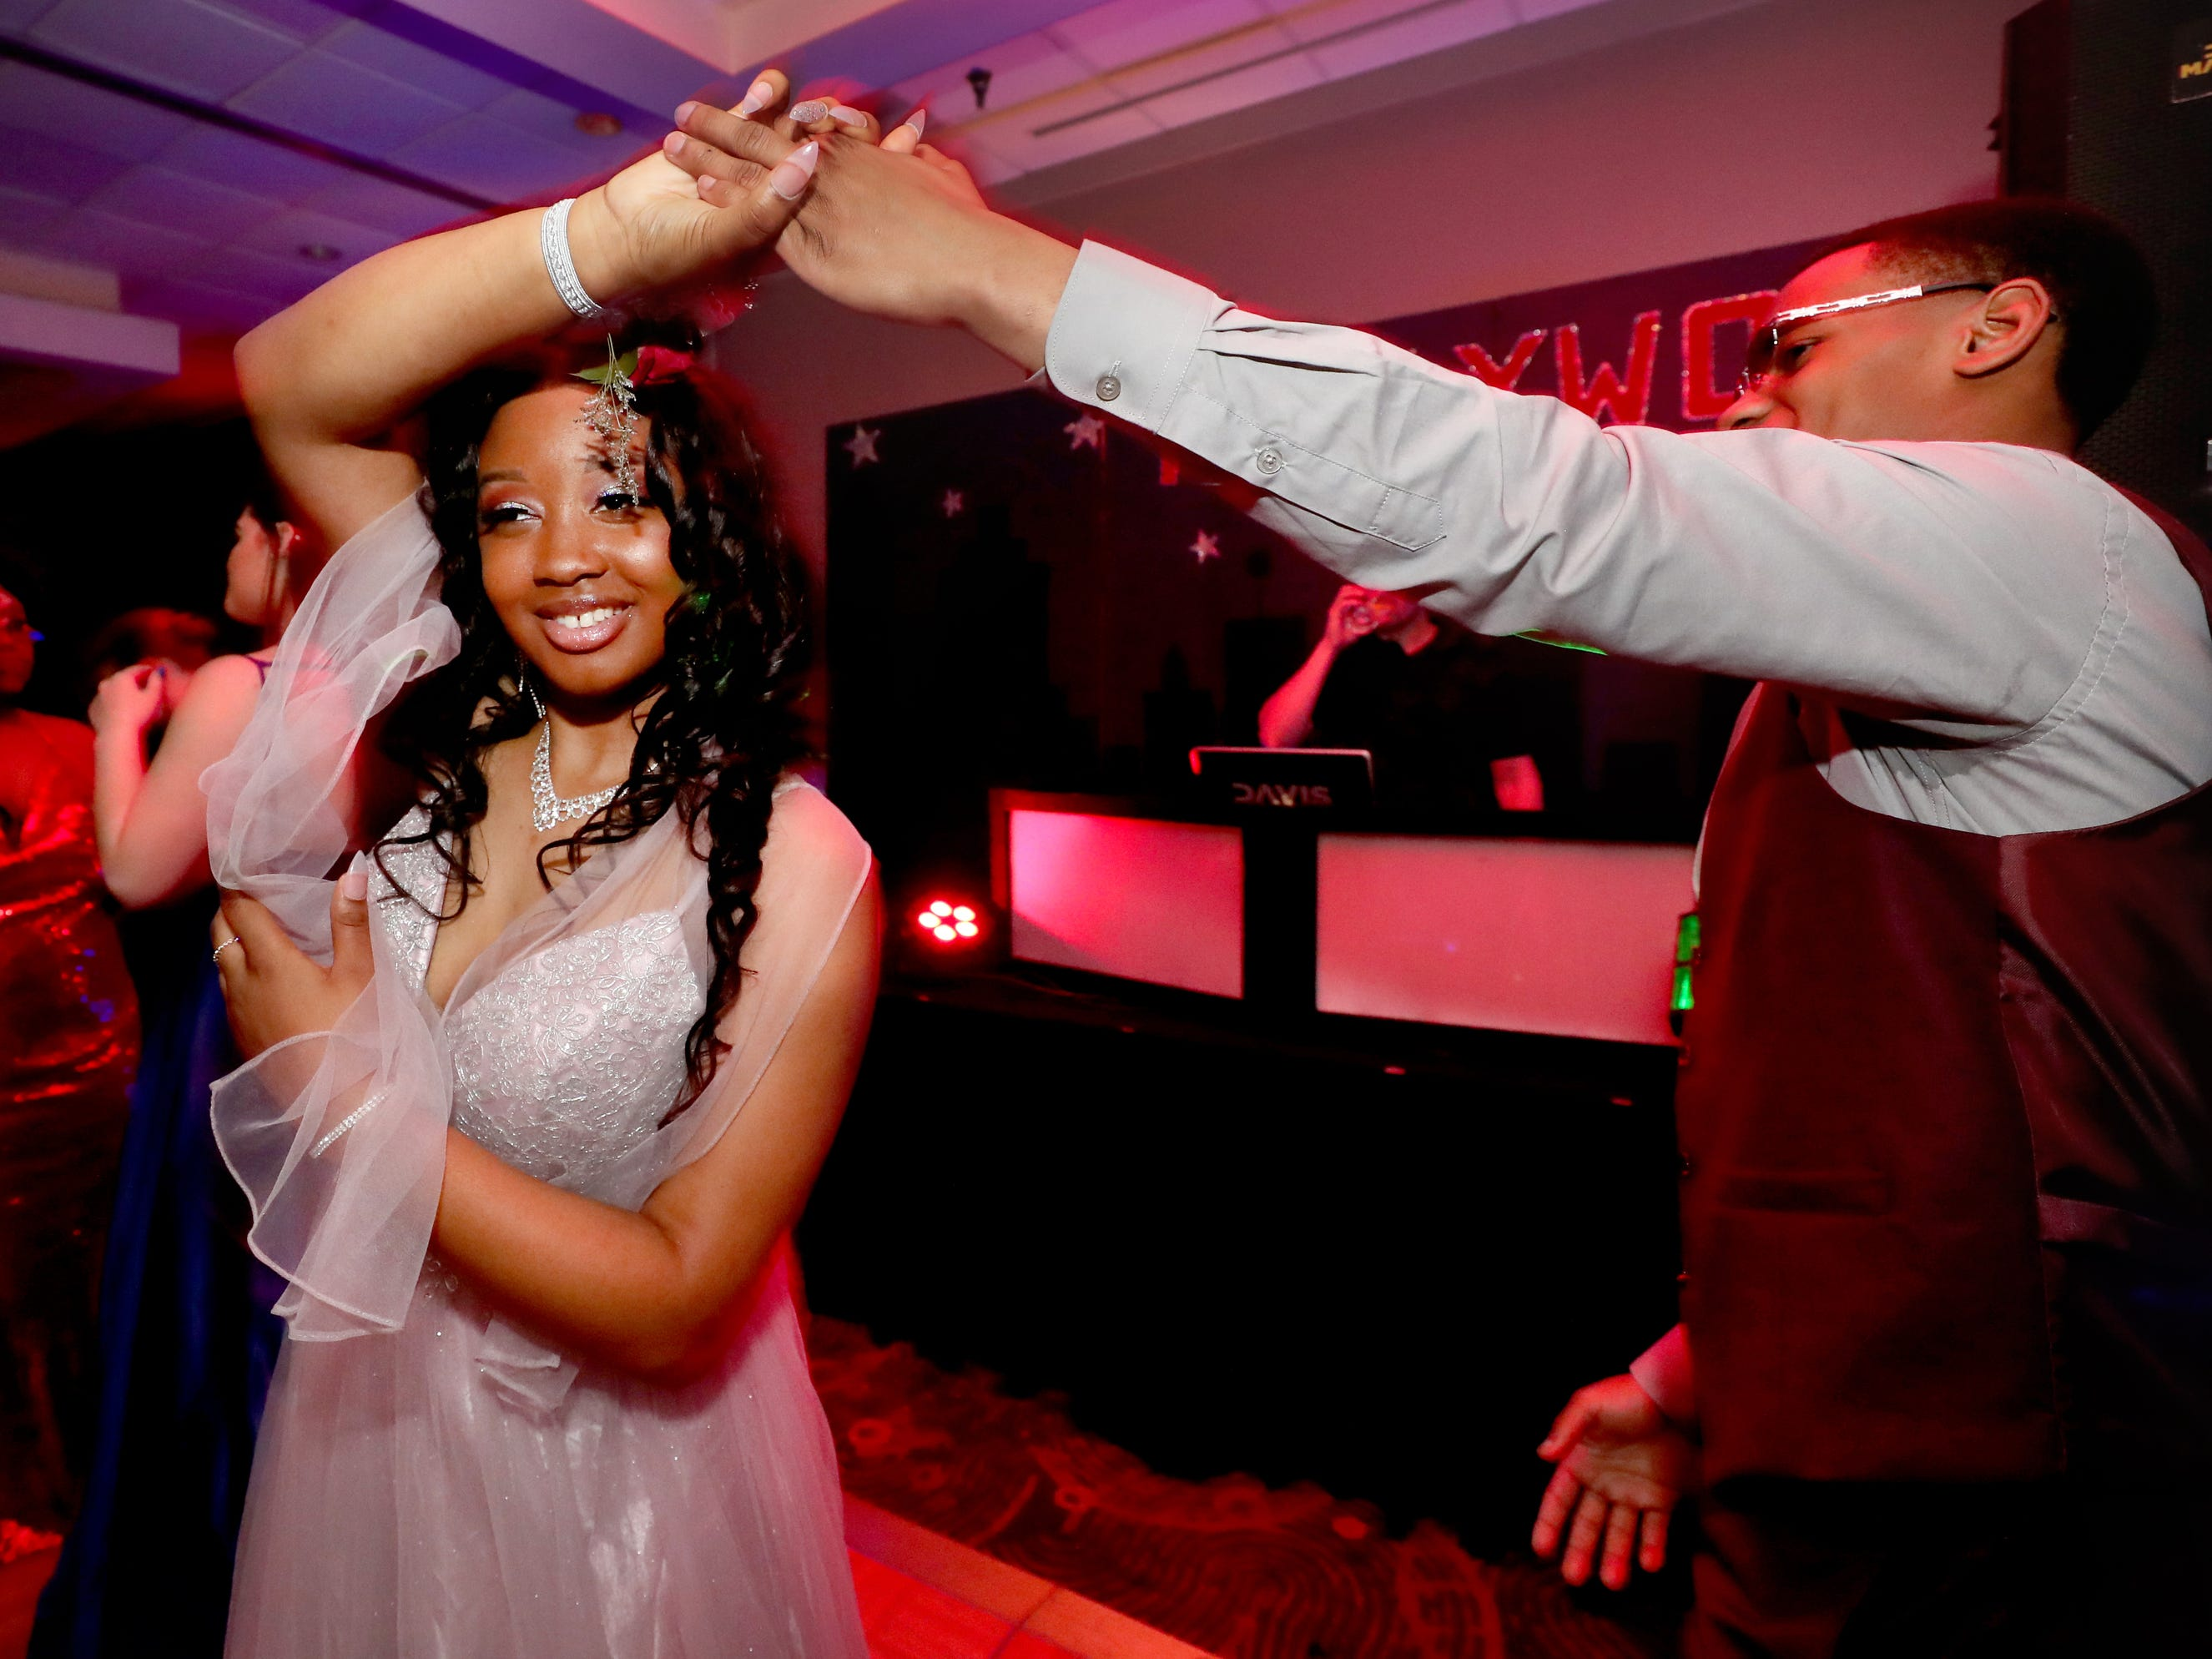 Aalijah Daniel, right spins Antoinette Sherrell, left, on the dance floor during a slow dance during Holloway's prom at the DoubleTree on Thursday April 18, 2019.